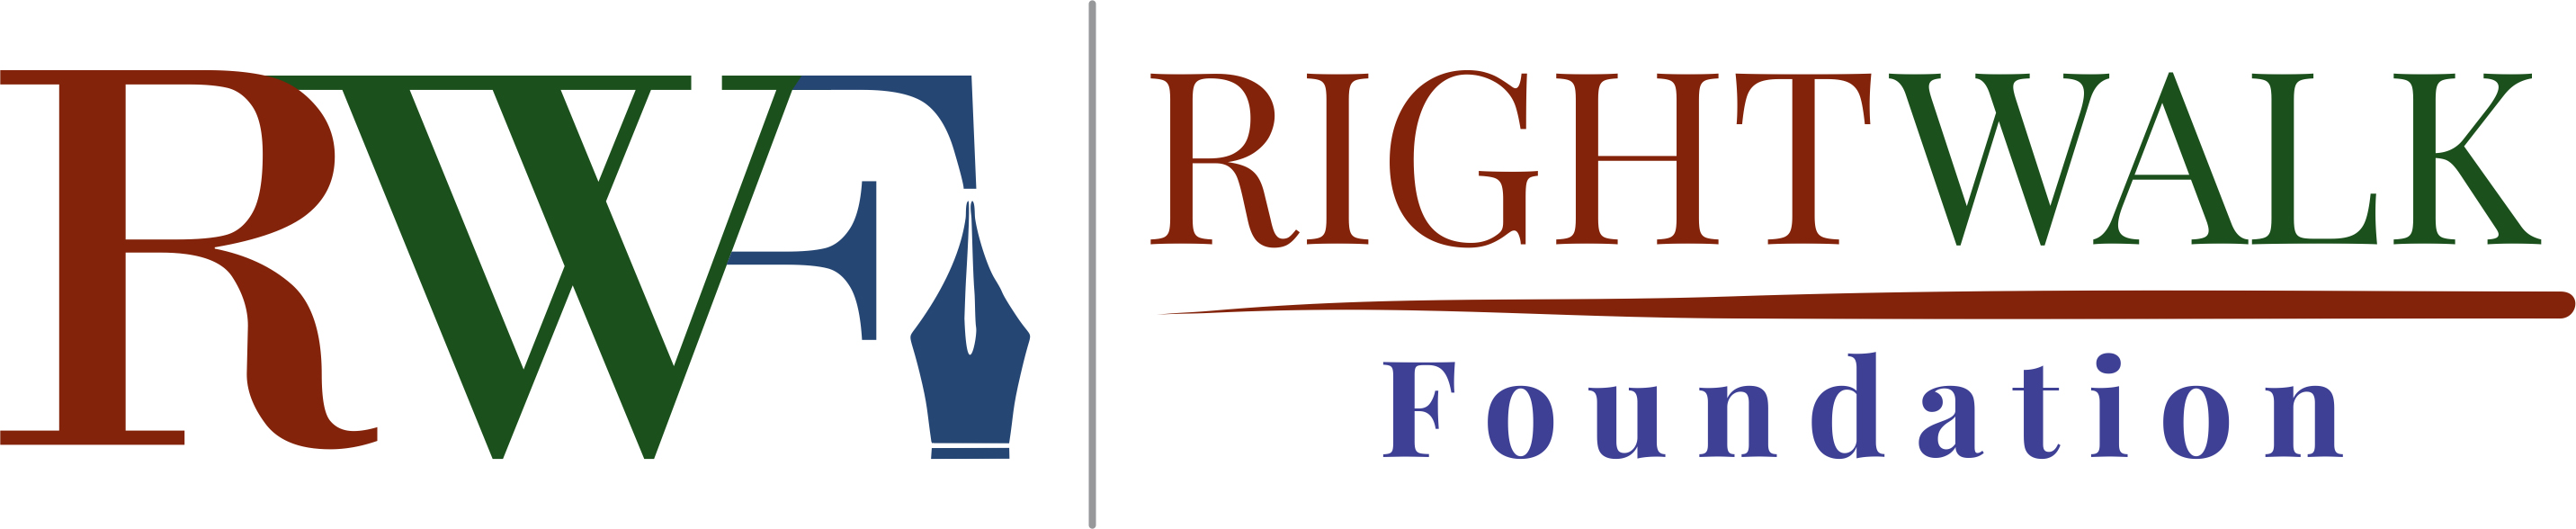 Rightwalk Foundation